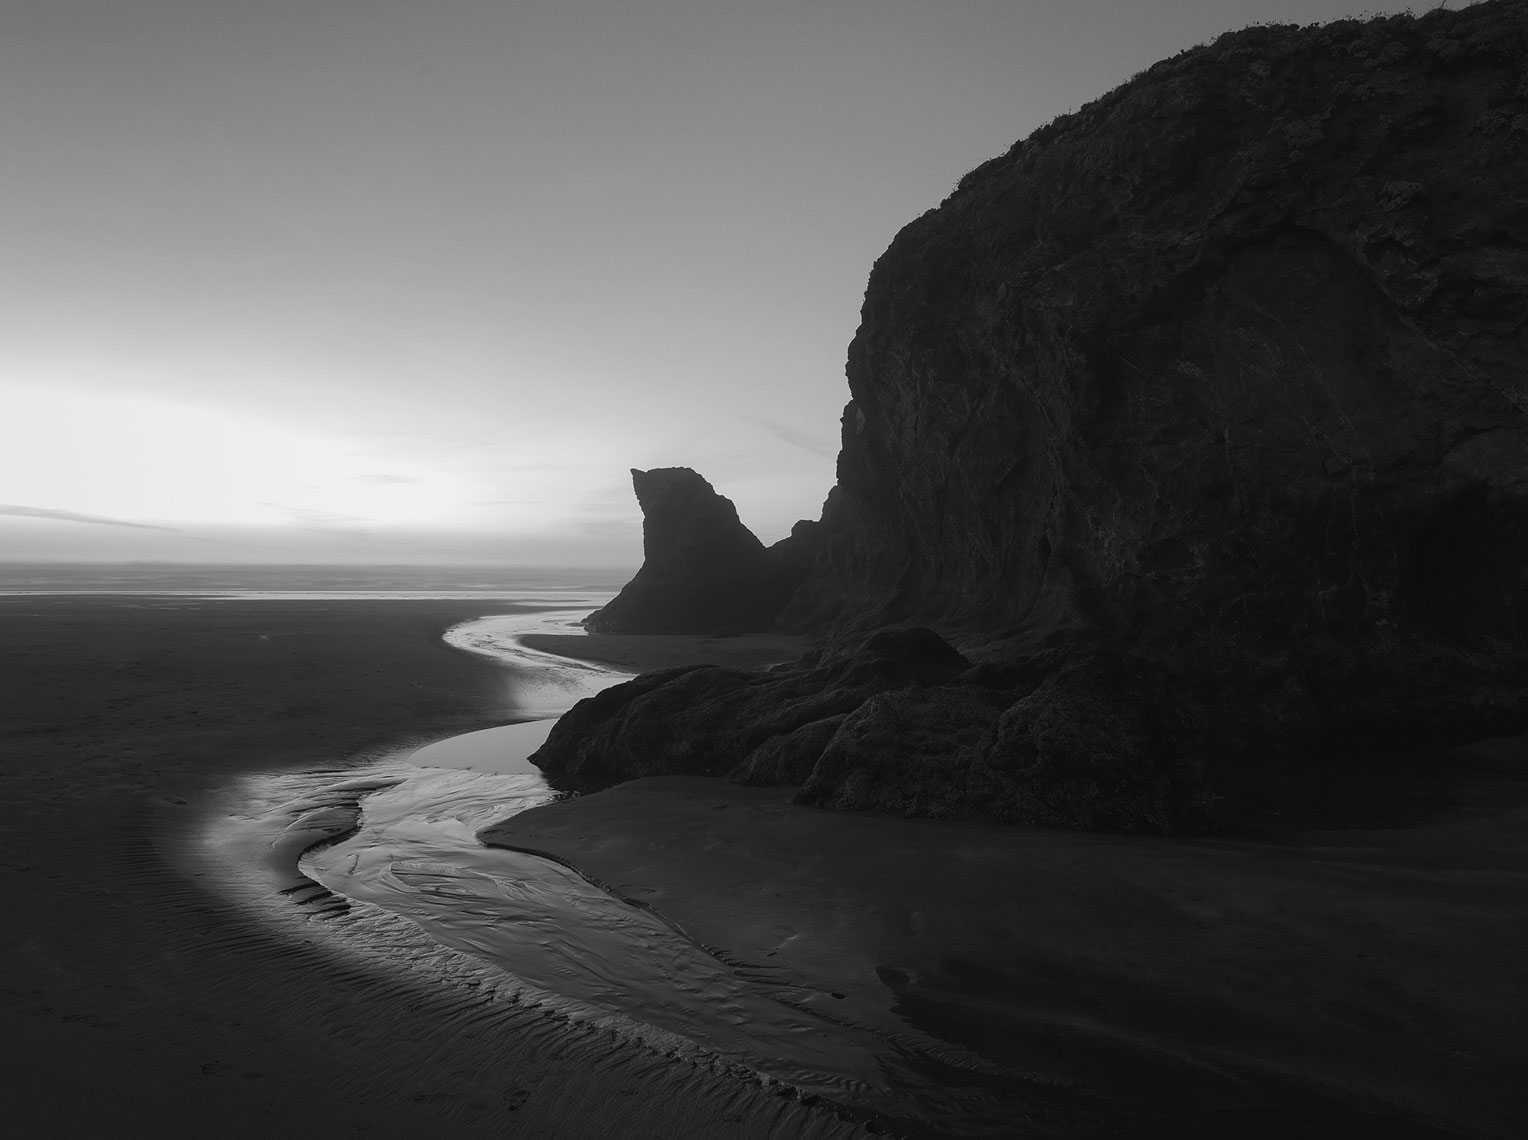 jeff-green-beach-cliff-edge-california-black-and-white